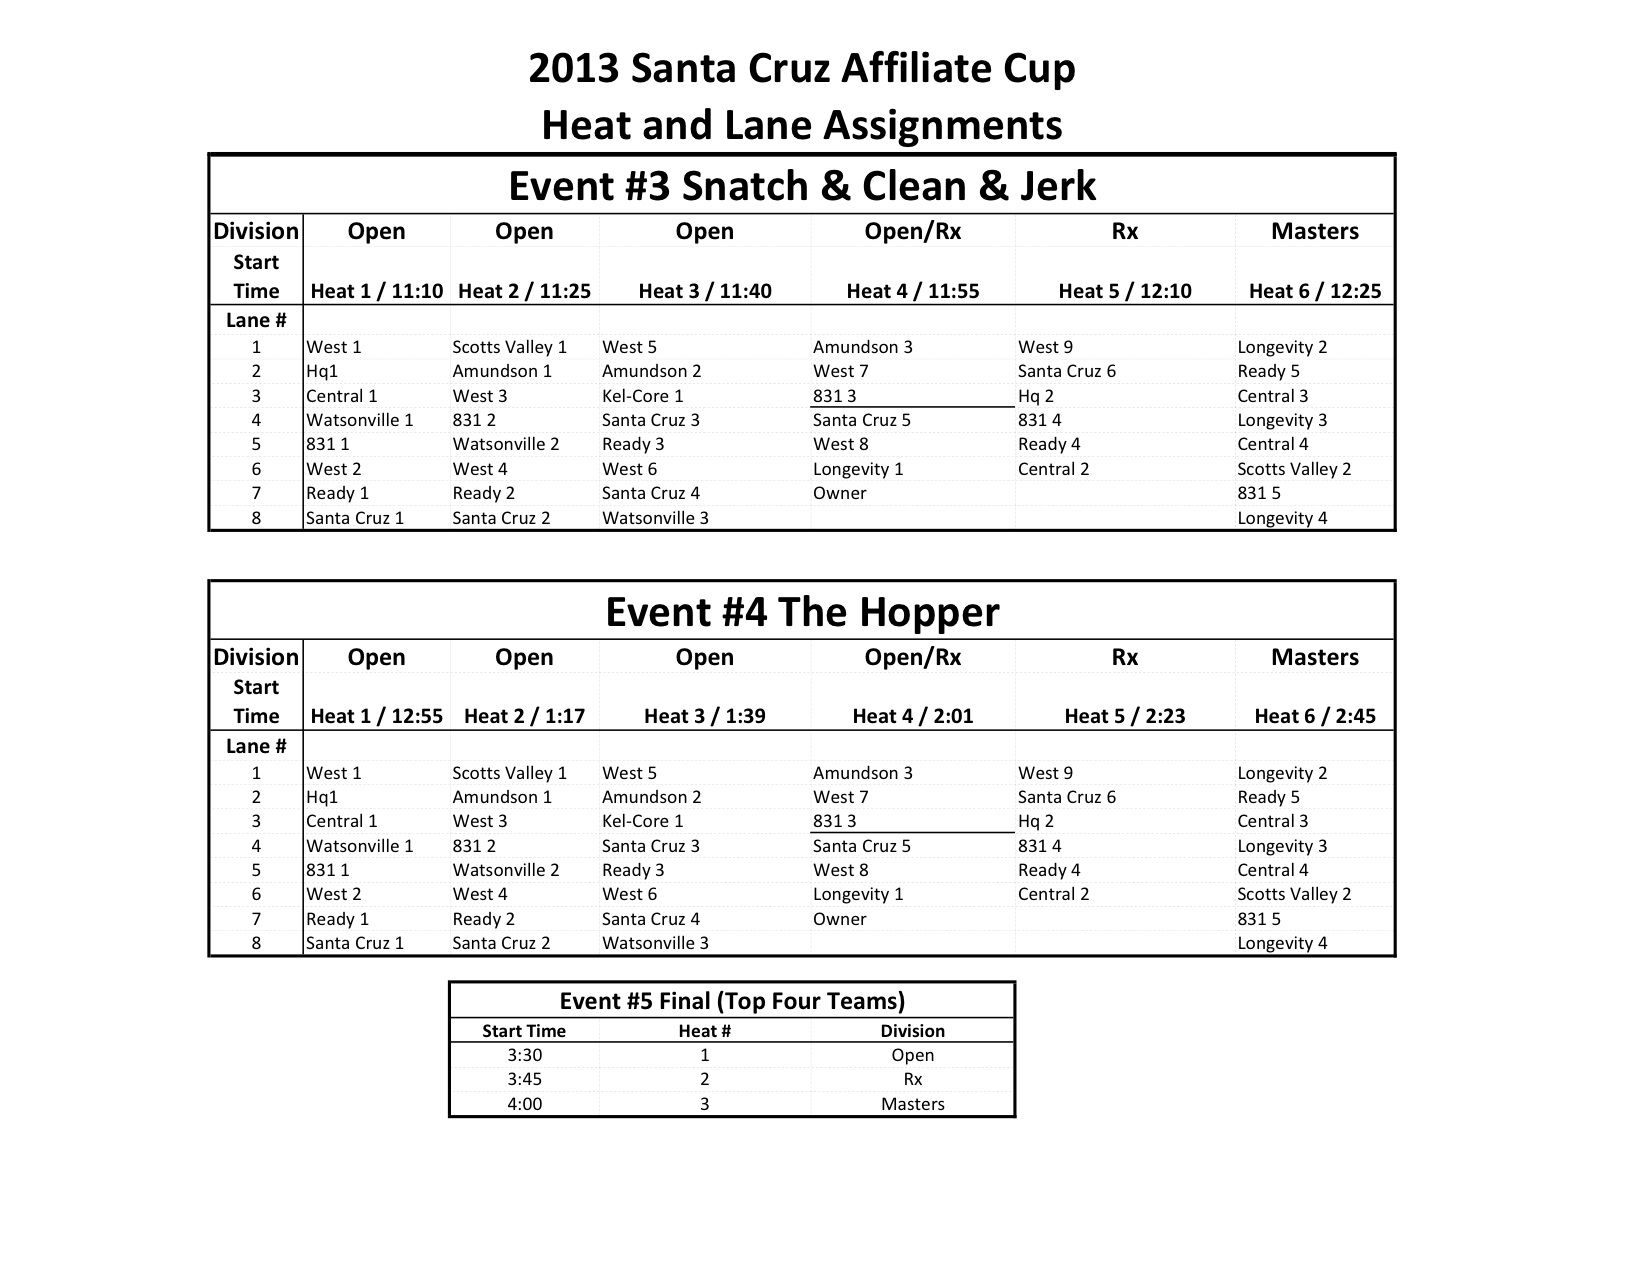 2013 Affiliate Cup Heat and Lane Assignments (1).jpg